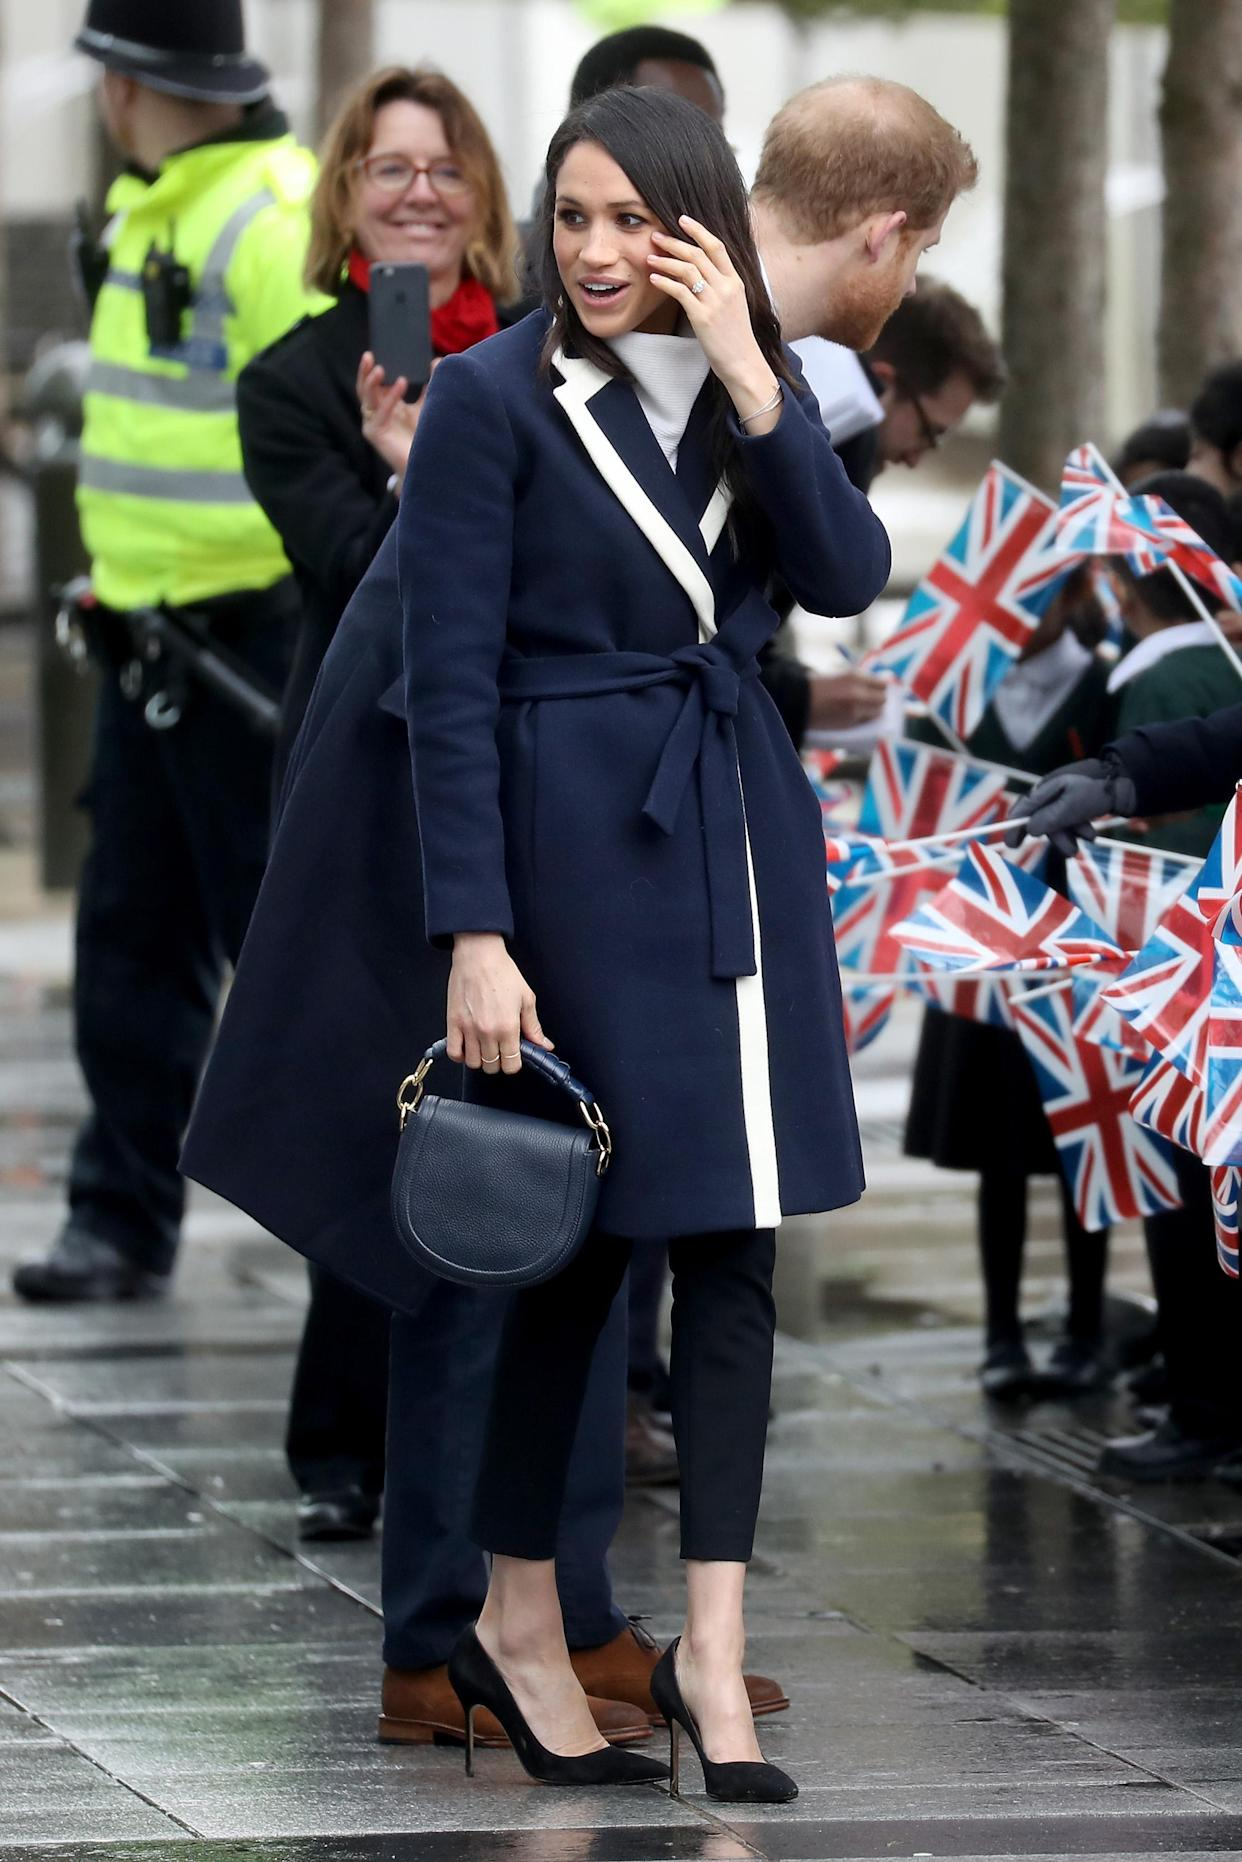 Markle visited Birmingham, England, in a J.Crew coat. (Photo: Chris Jackson/Getty Images)